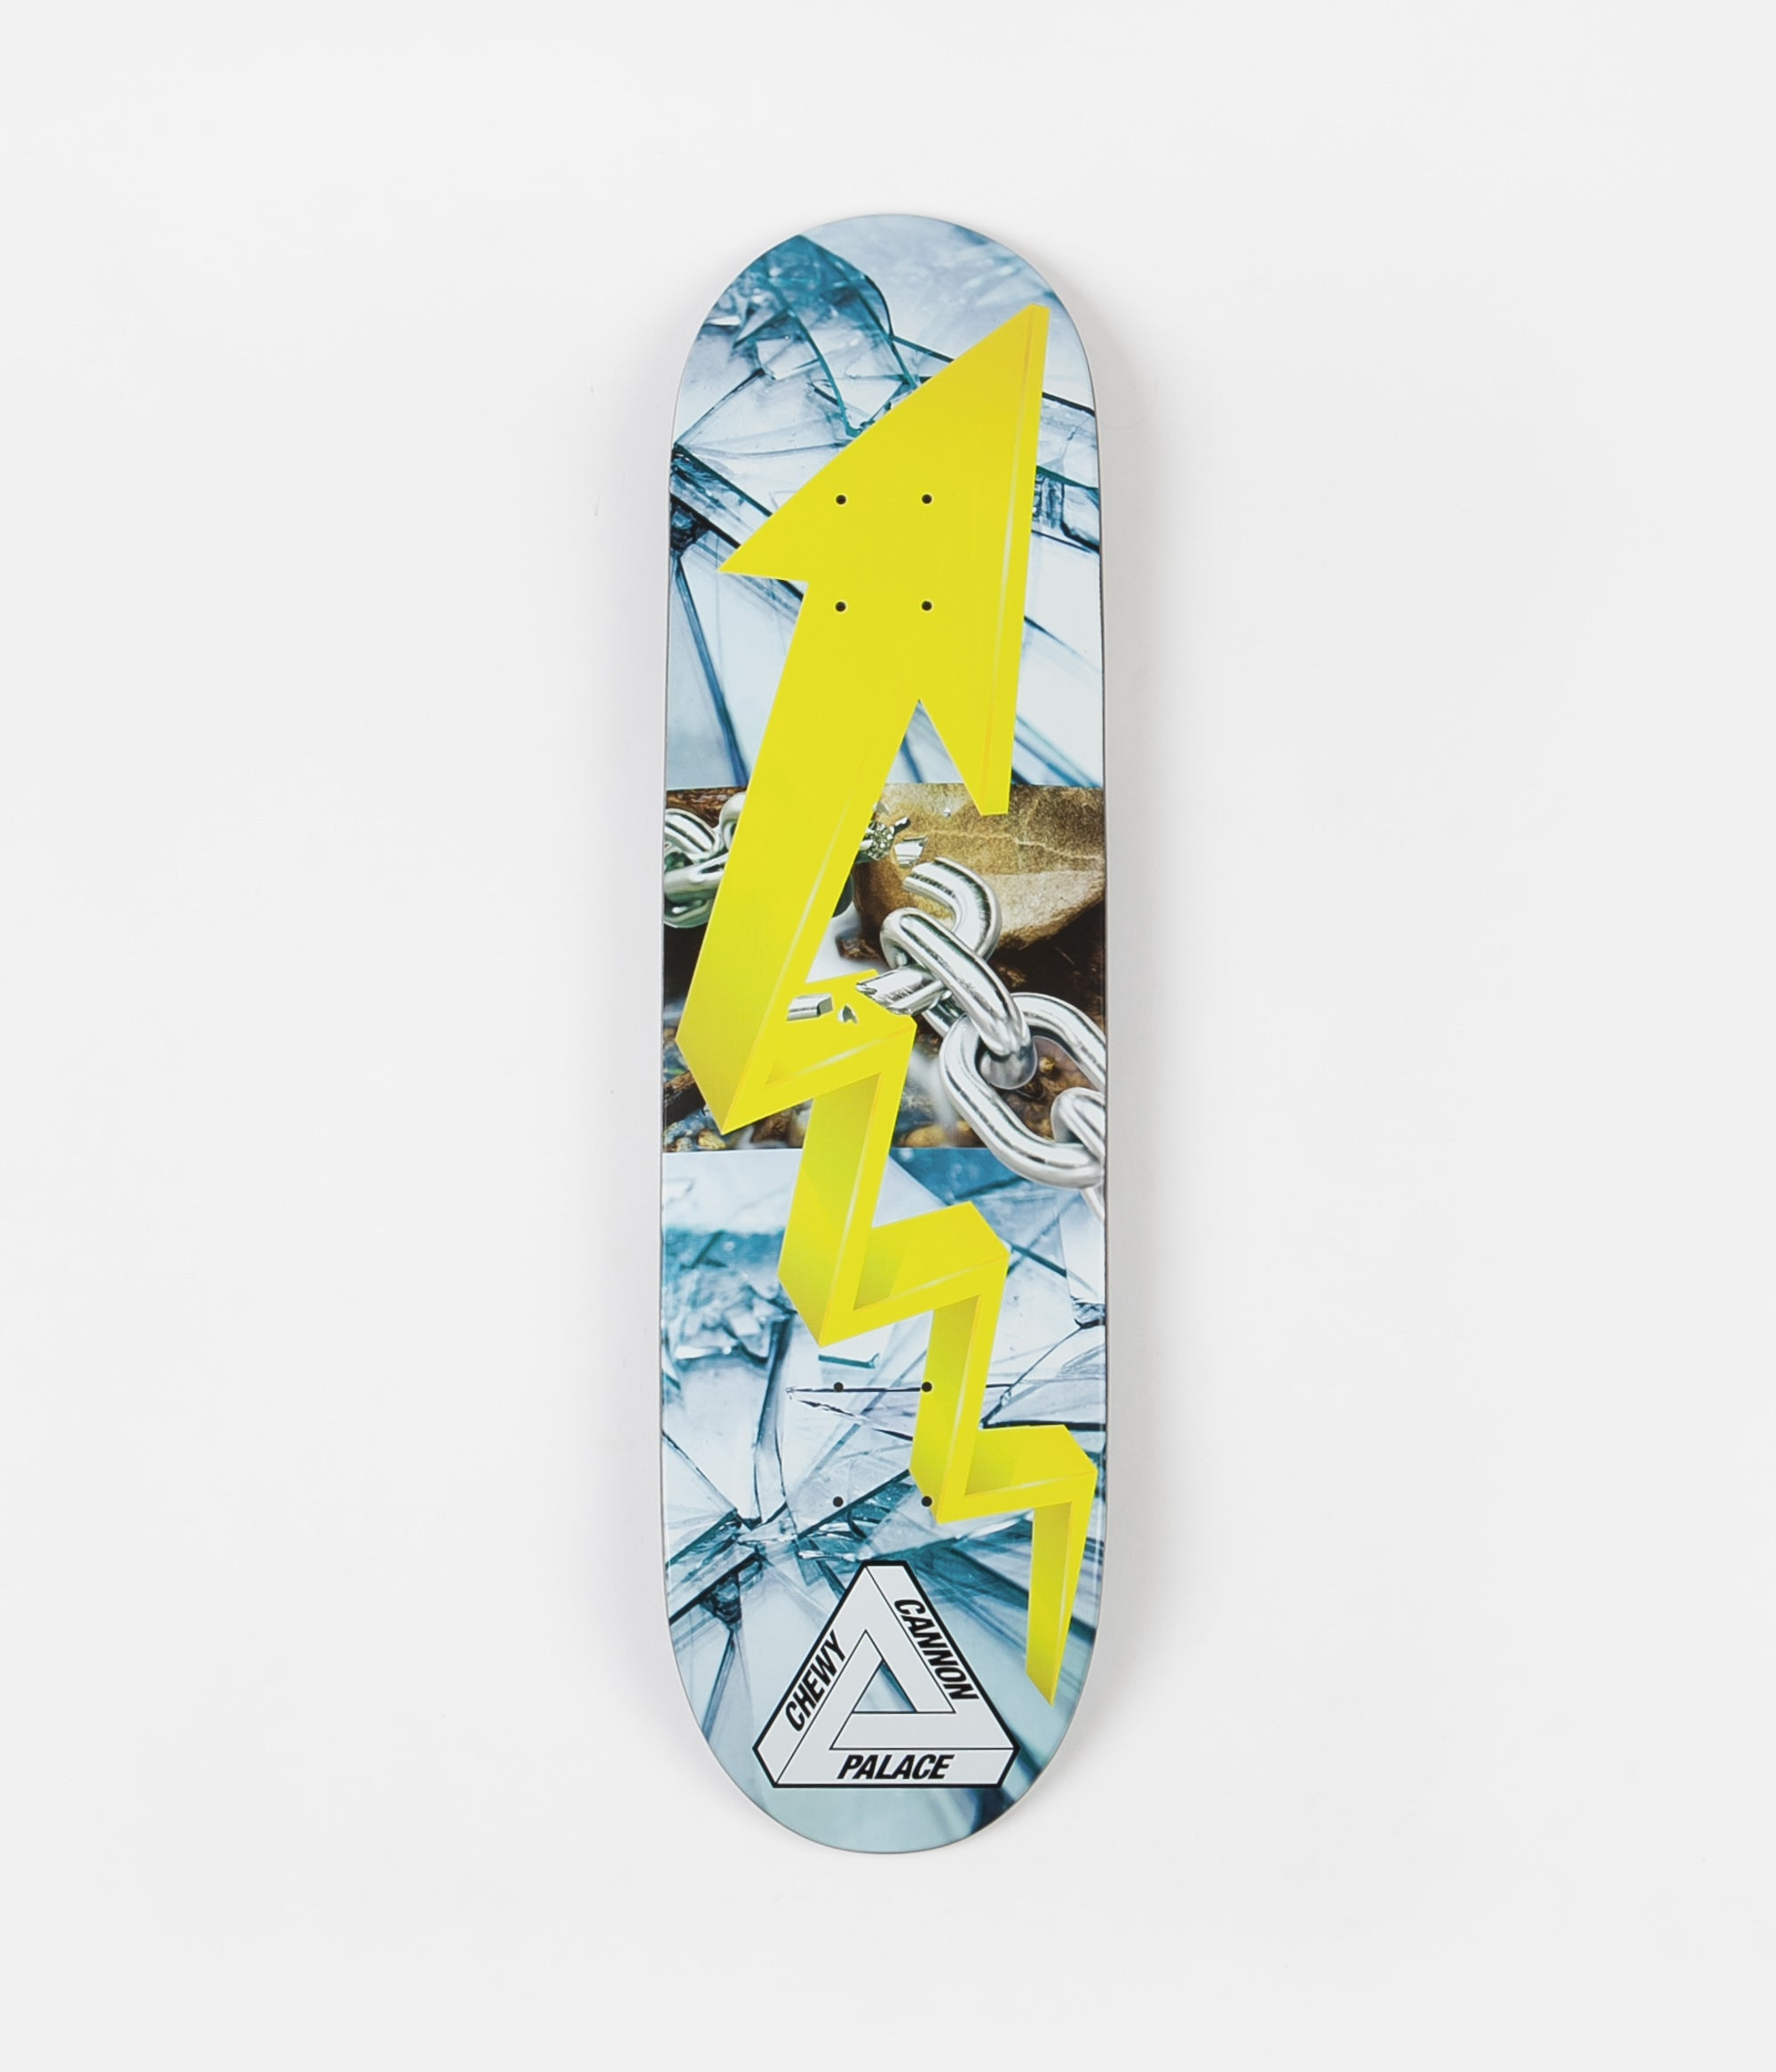 Palace Chewy Pro S18 Deck - 8.375""